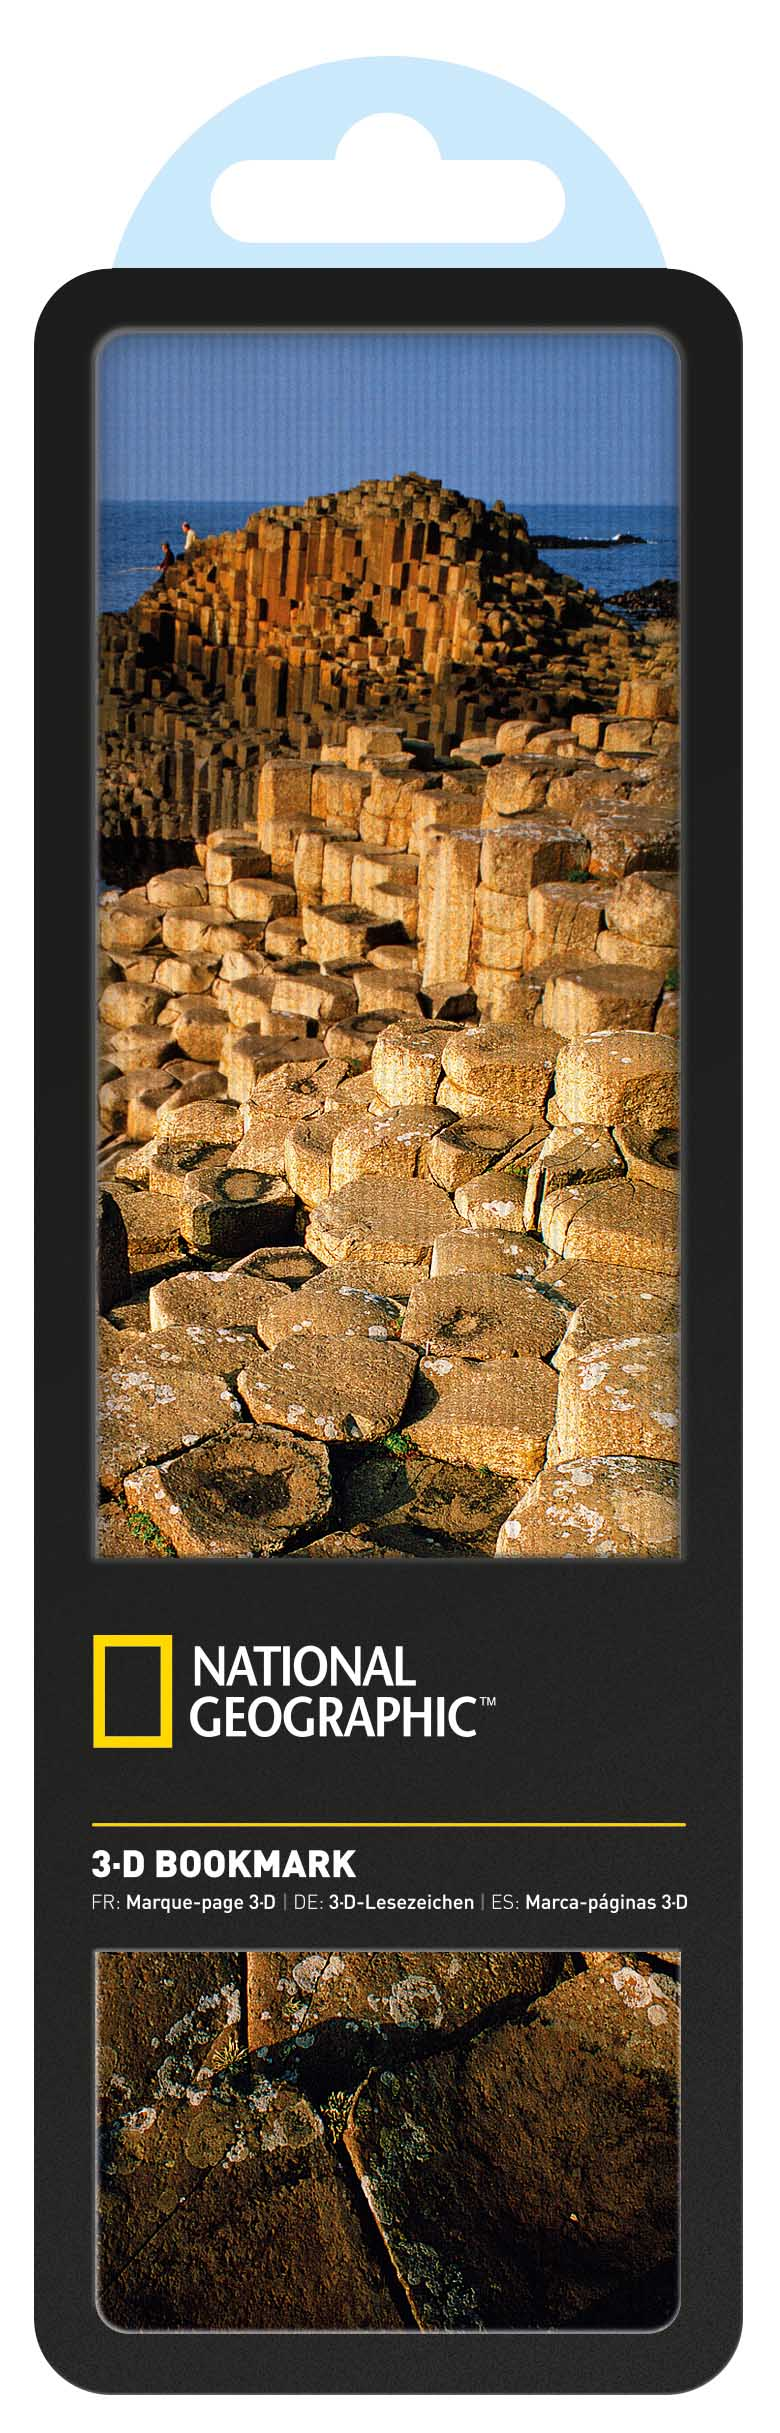 National Geographic 3-D Bookmark-Giants Causeway